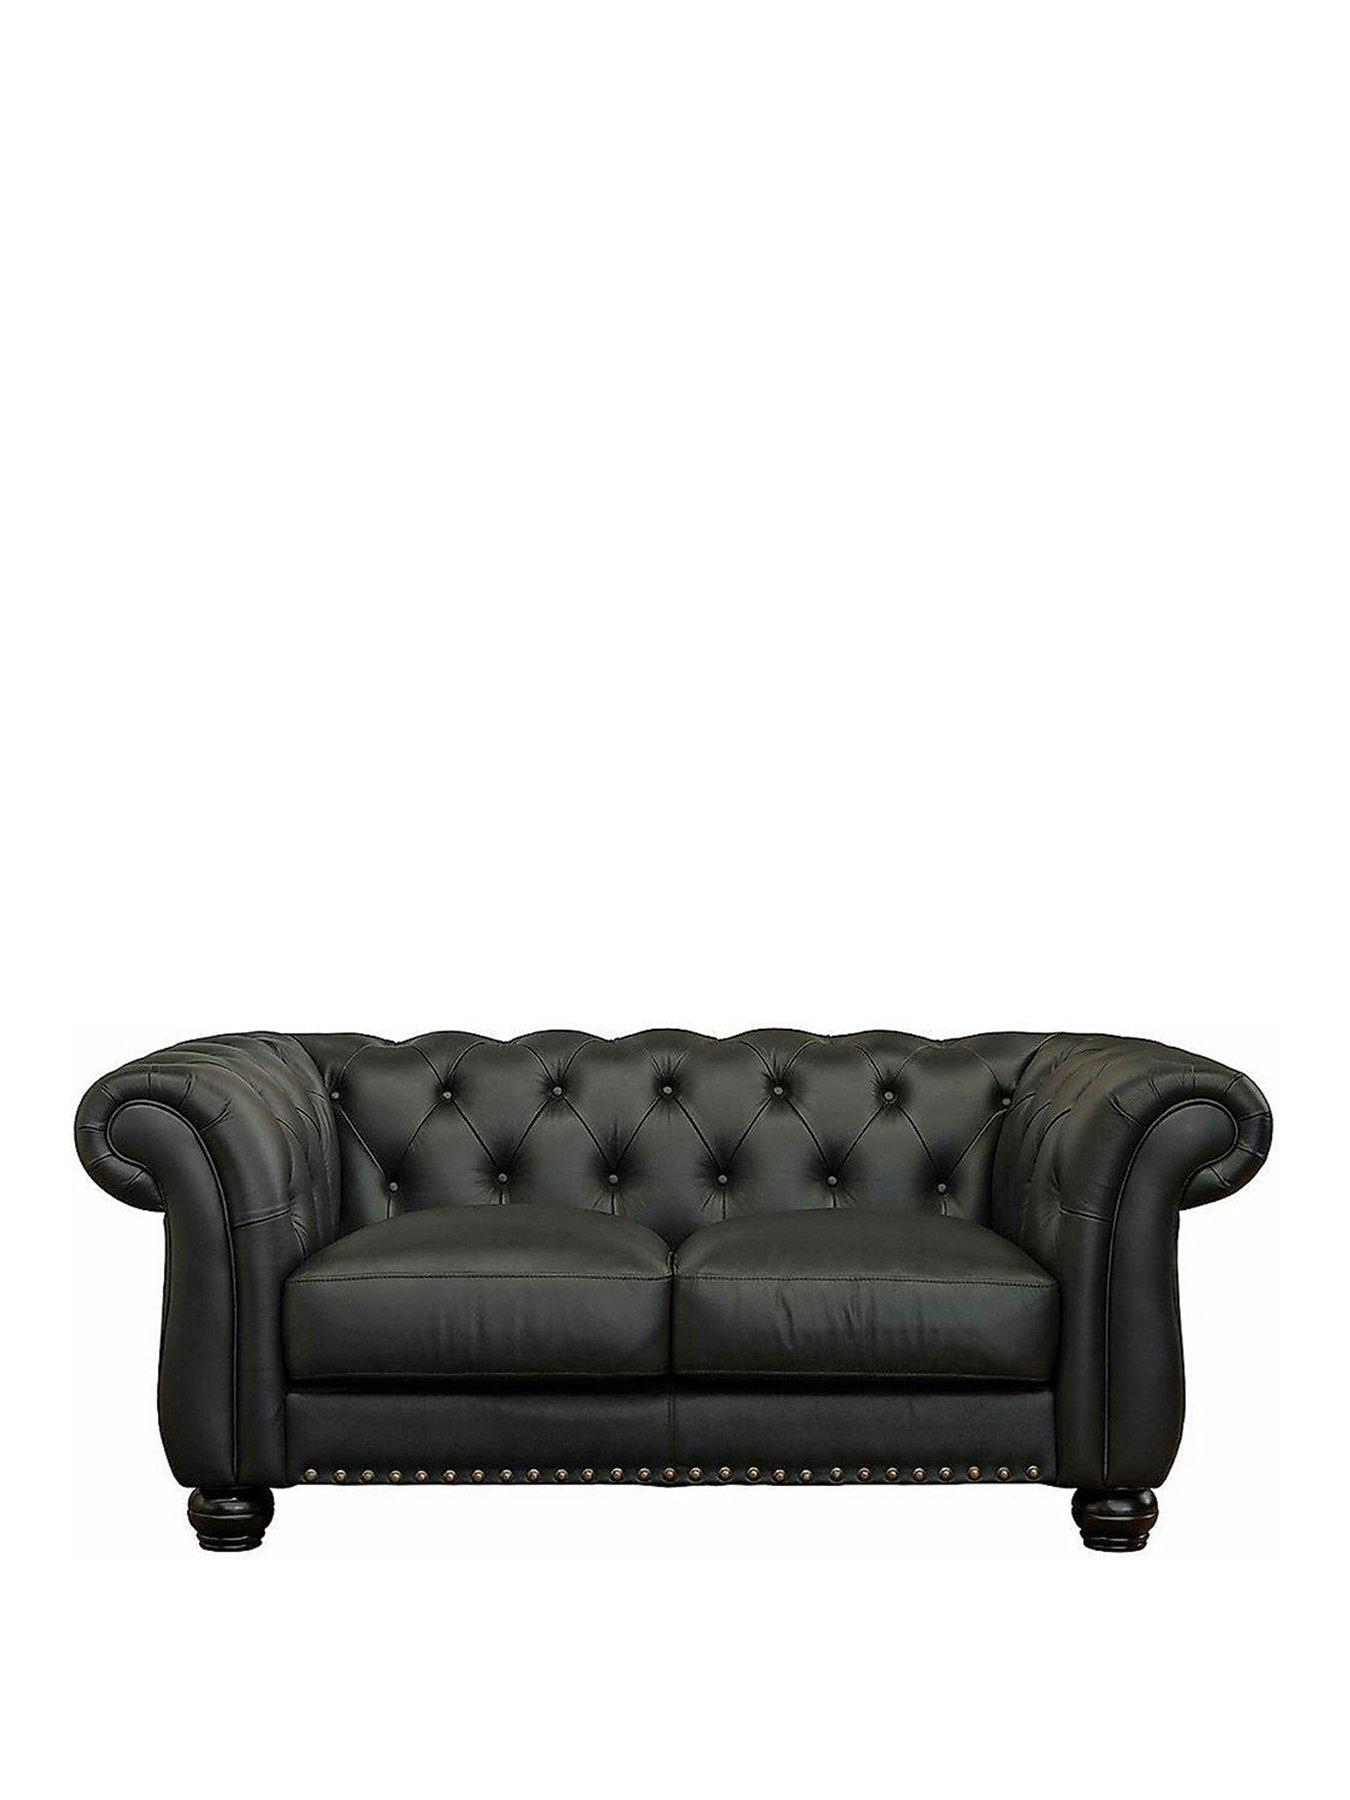 the leather sofa company uk black silk pillows bakerfield 2 seater very co